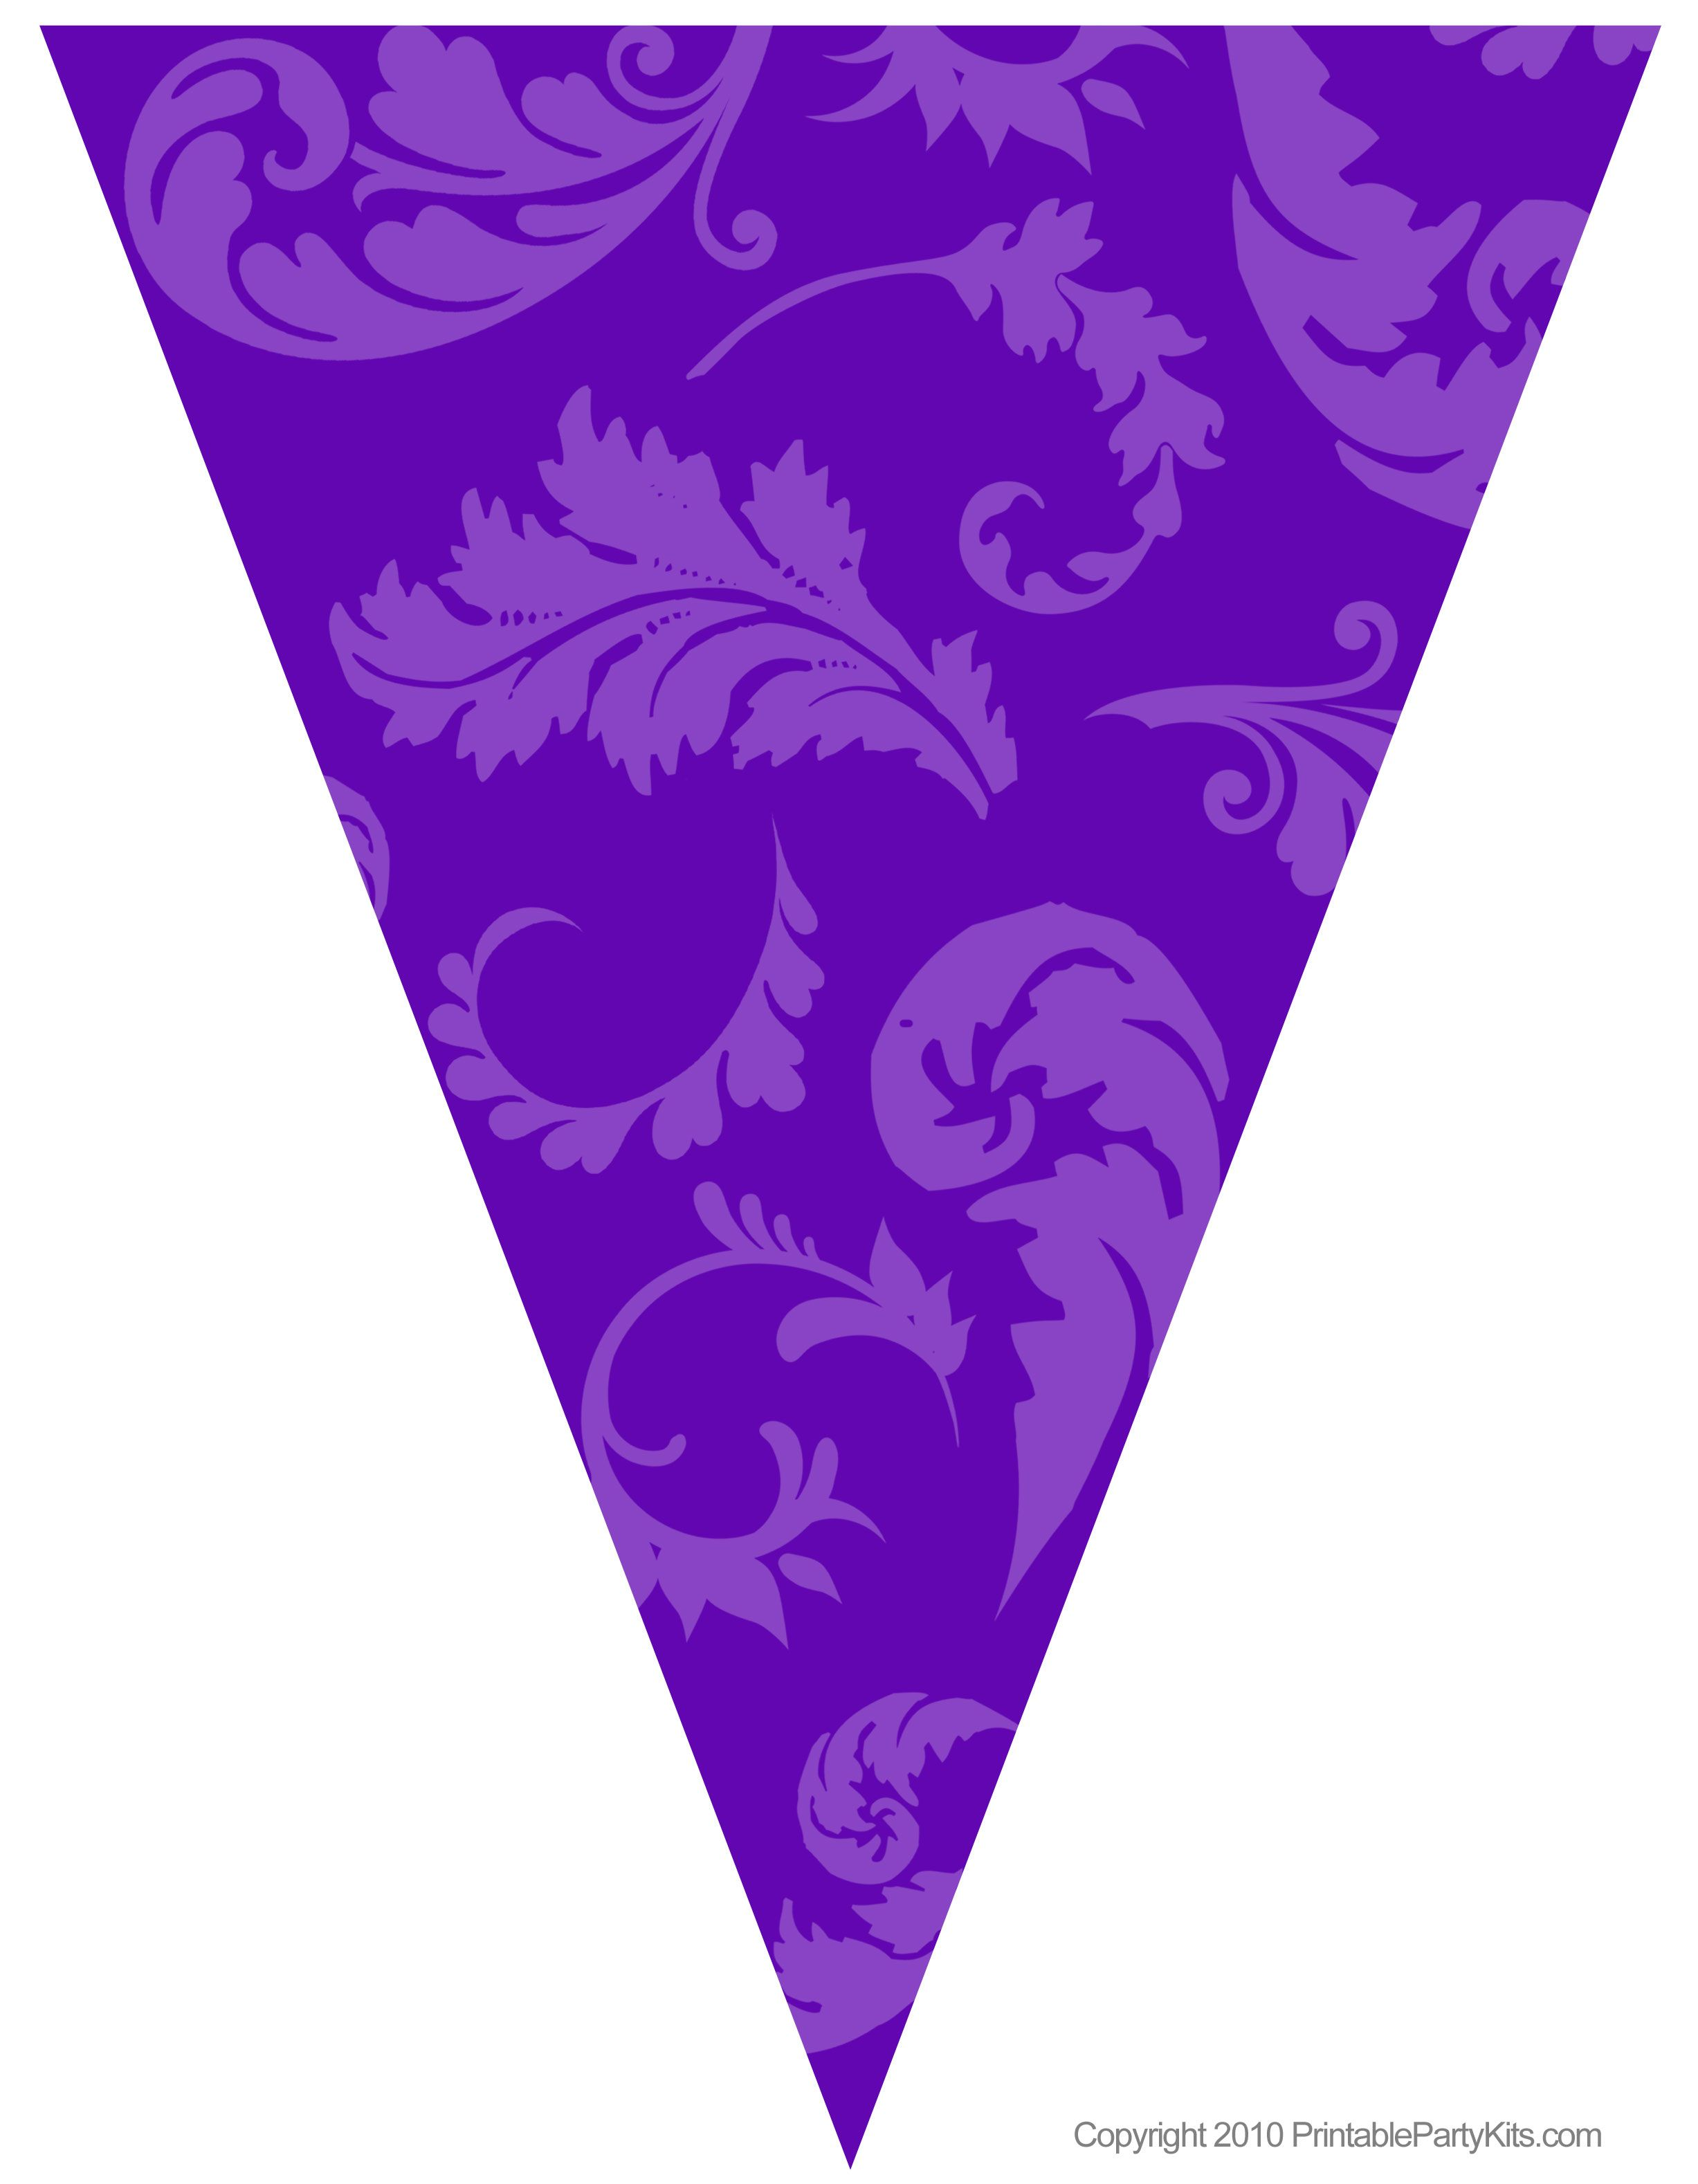 Free Graduation Party Flag Decorations Printable Party Kits Party Flags Flag Decor Purple Party Decorations